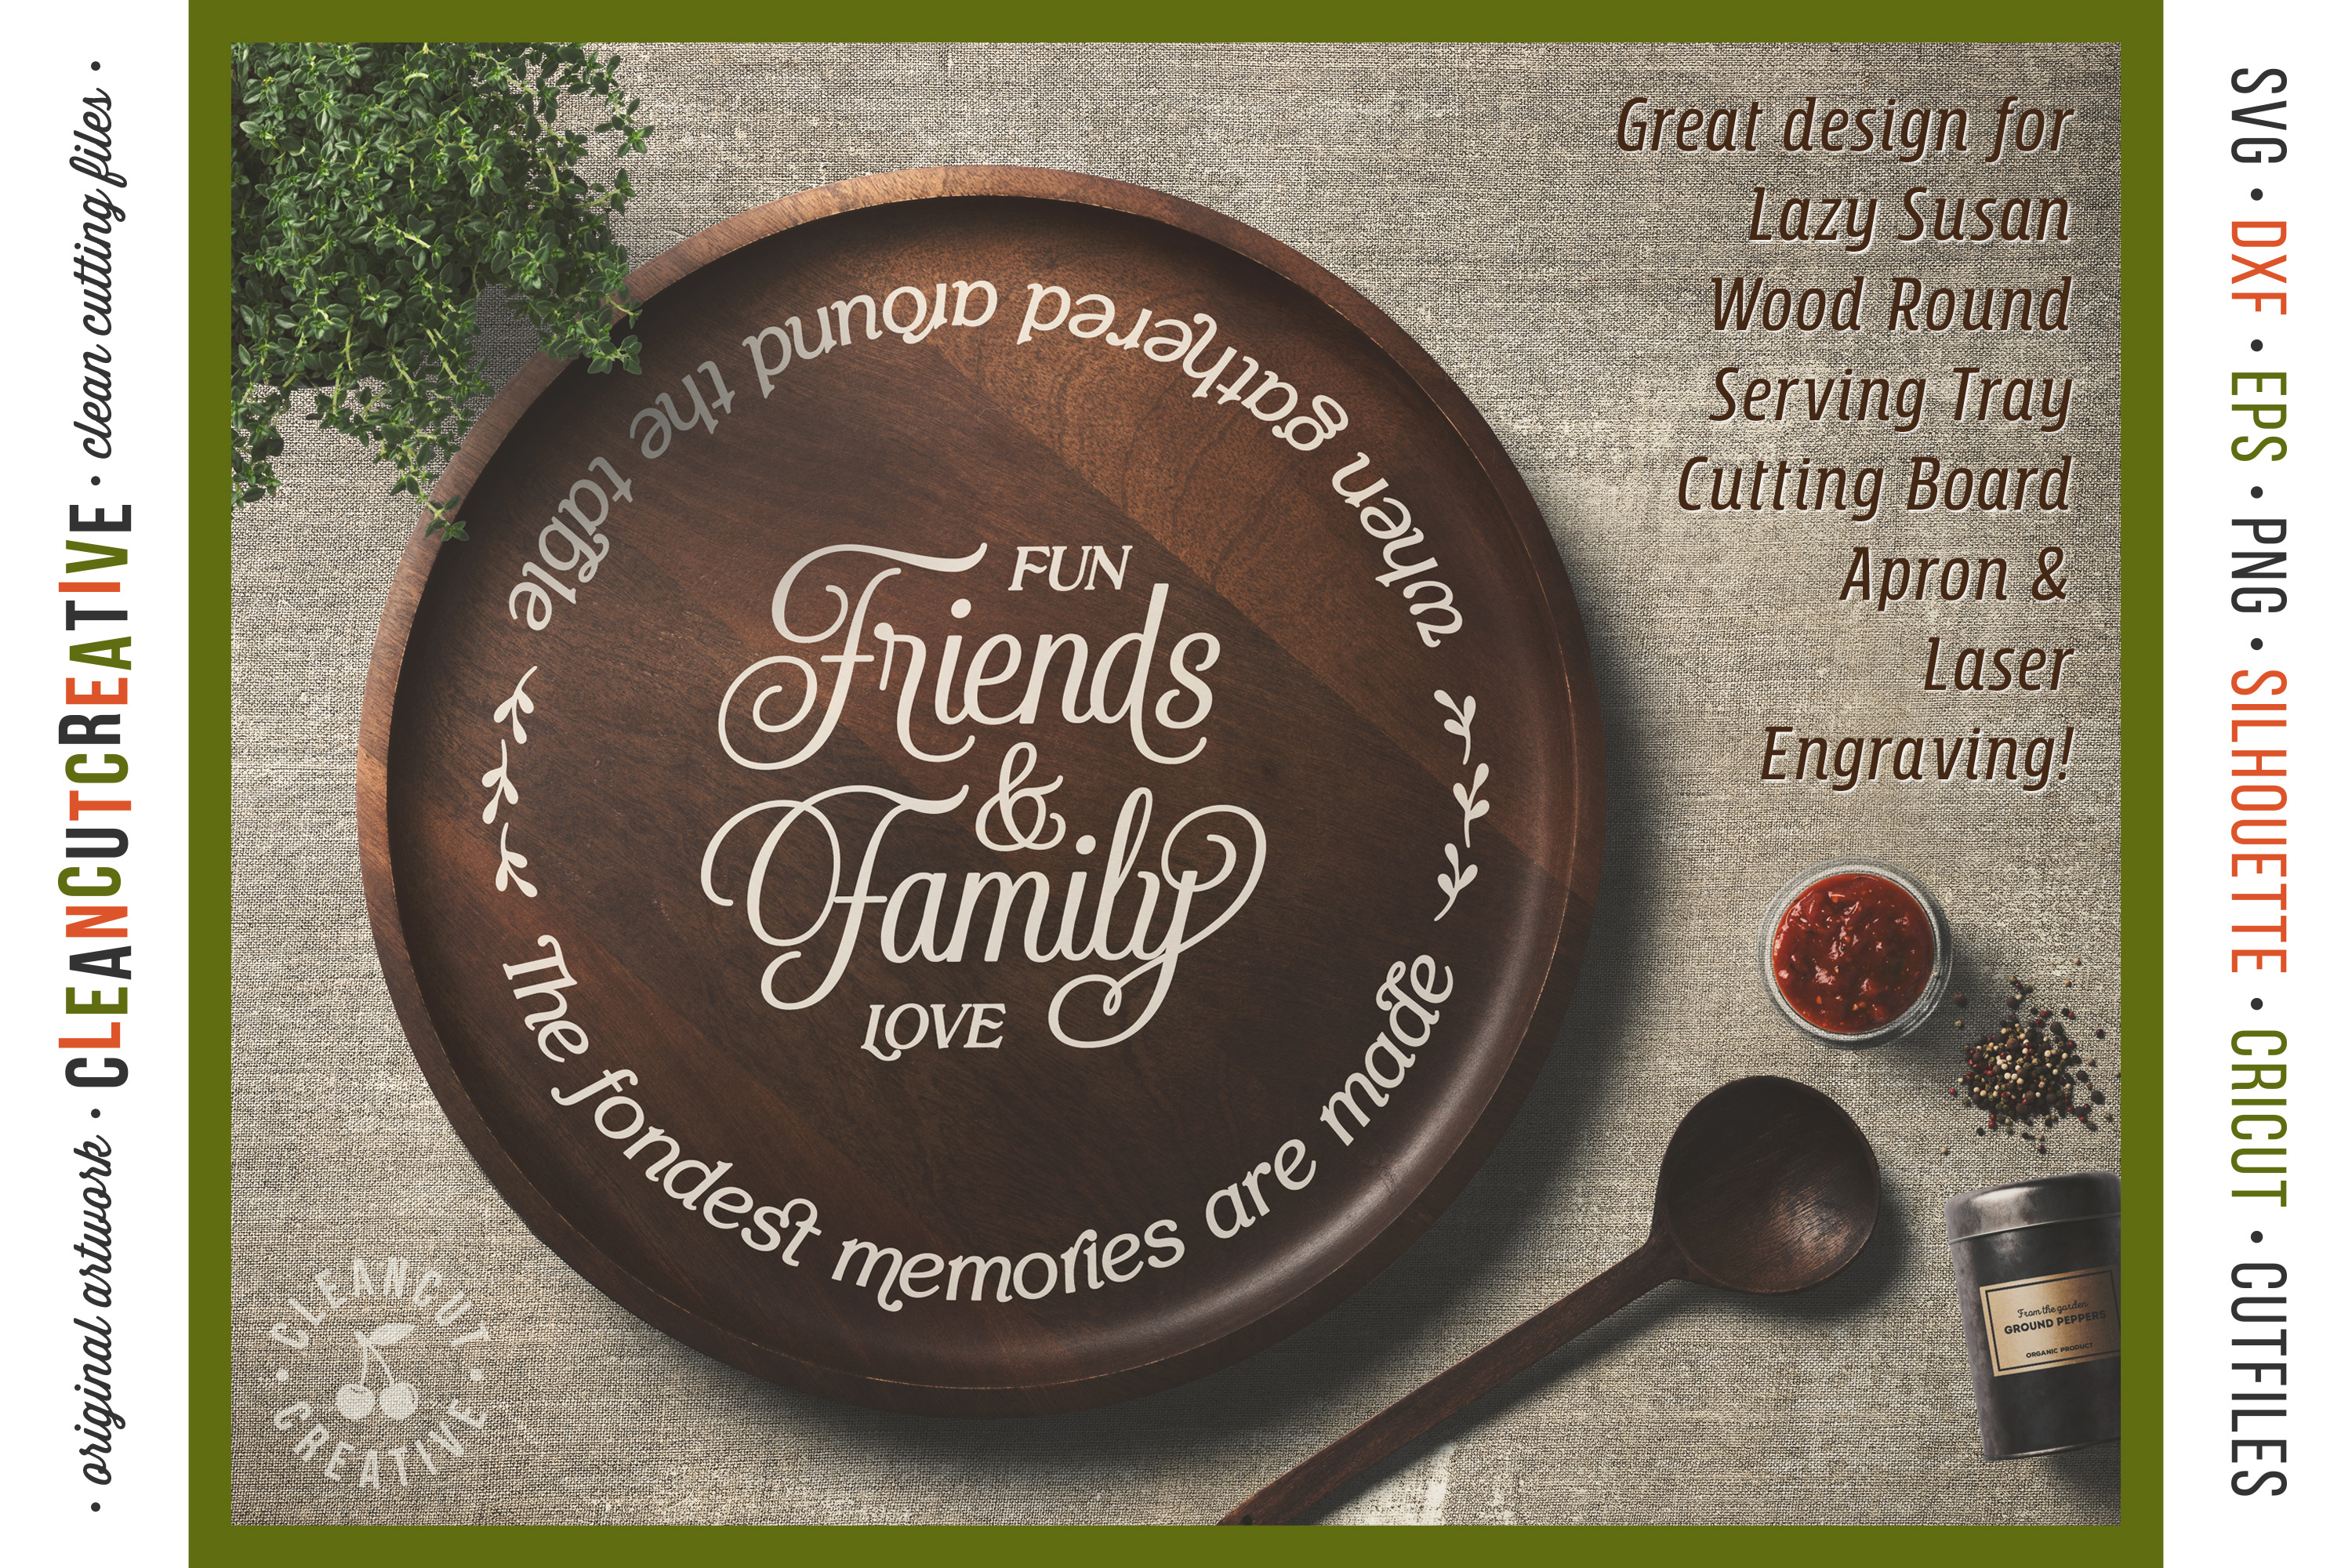 Friends & Family Fondest Memories Gathered Table - round svg example image 2